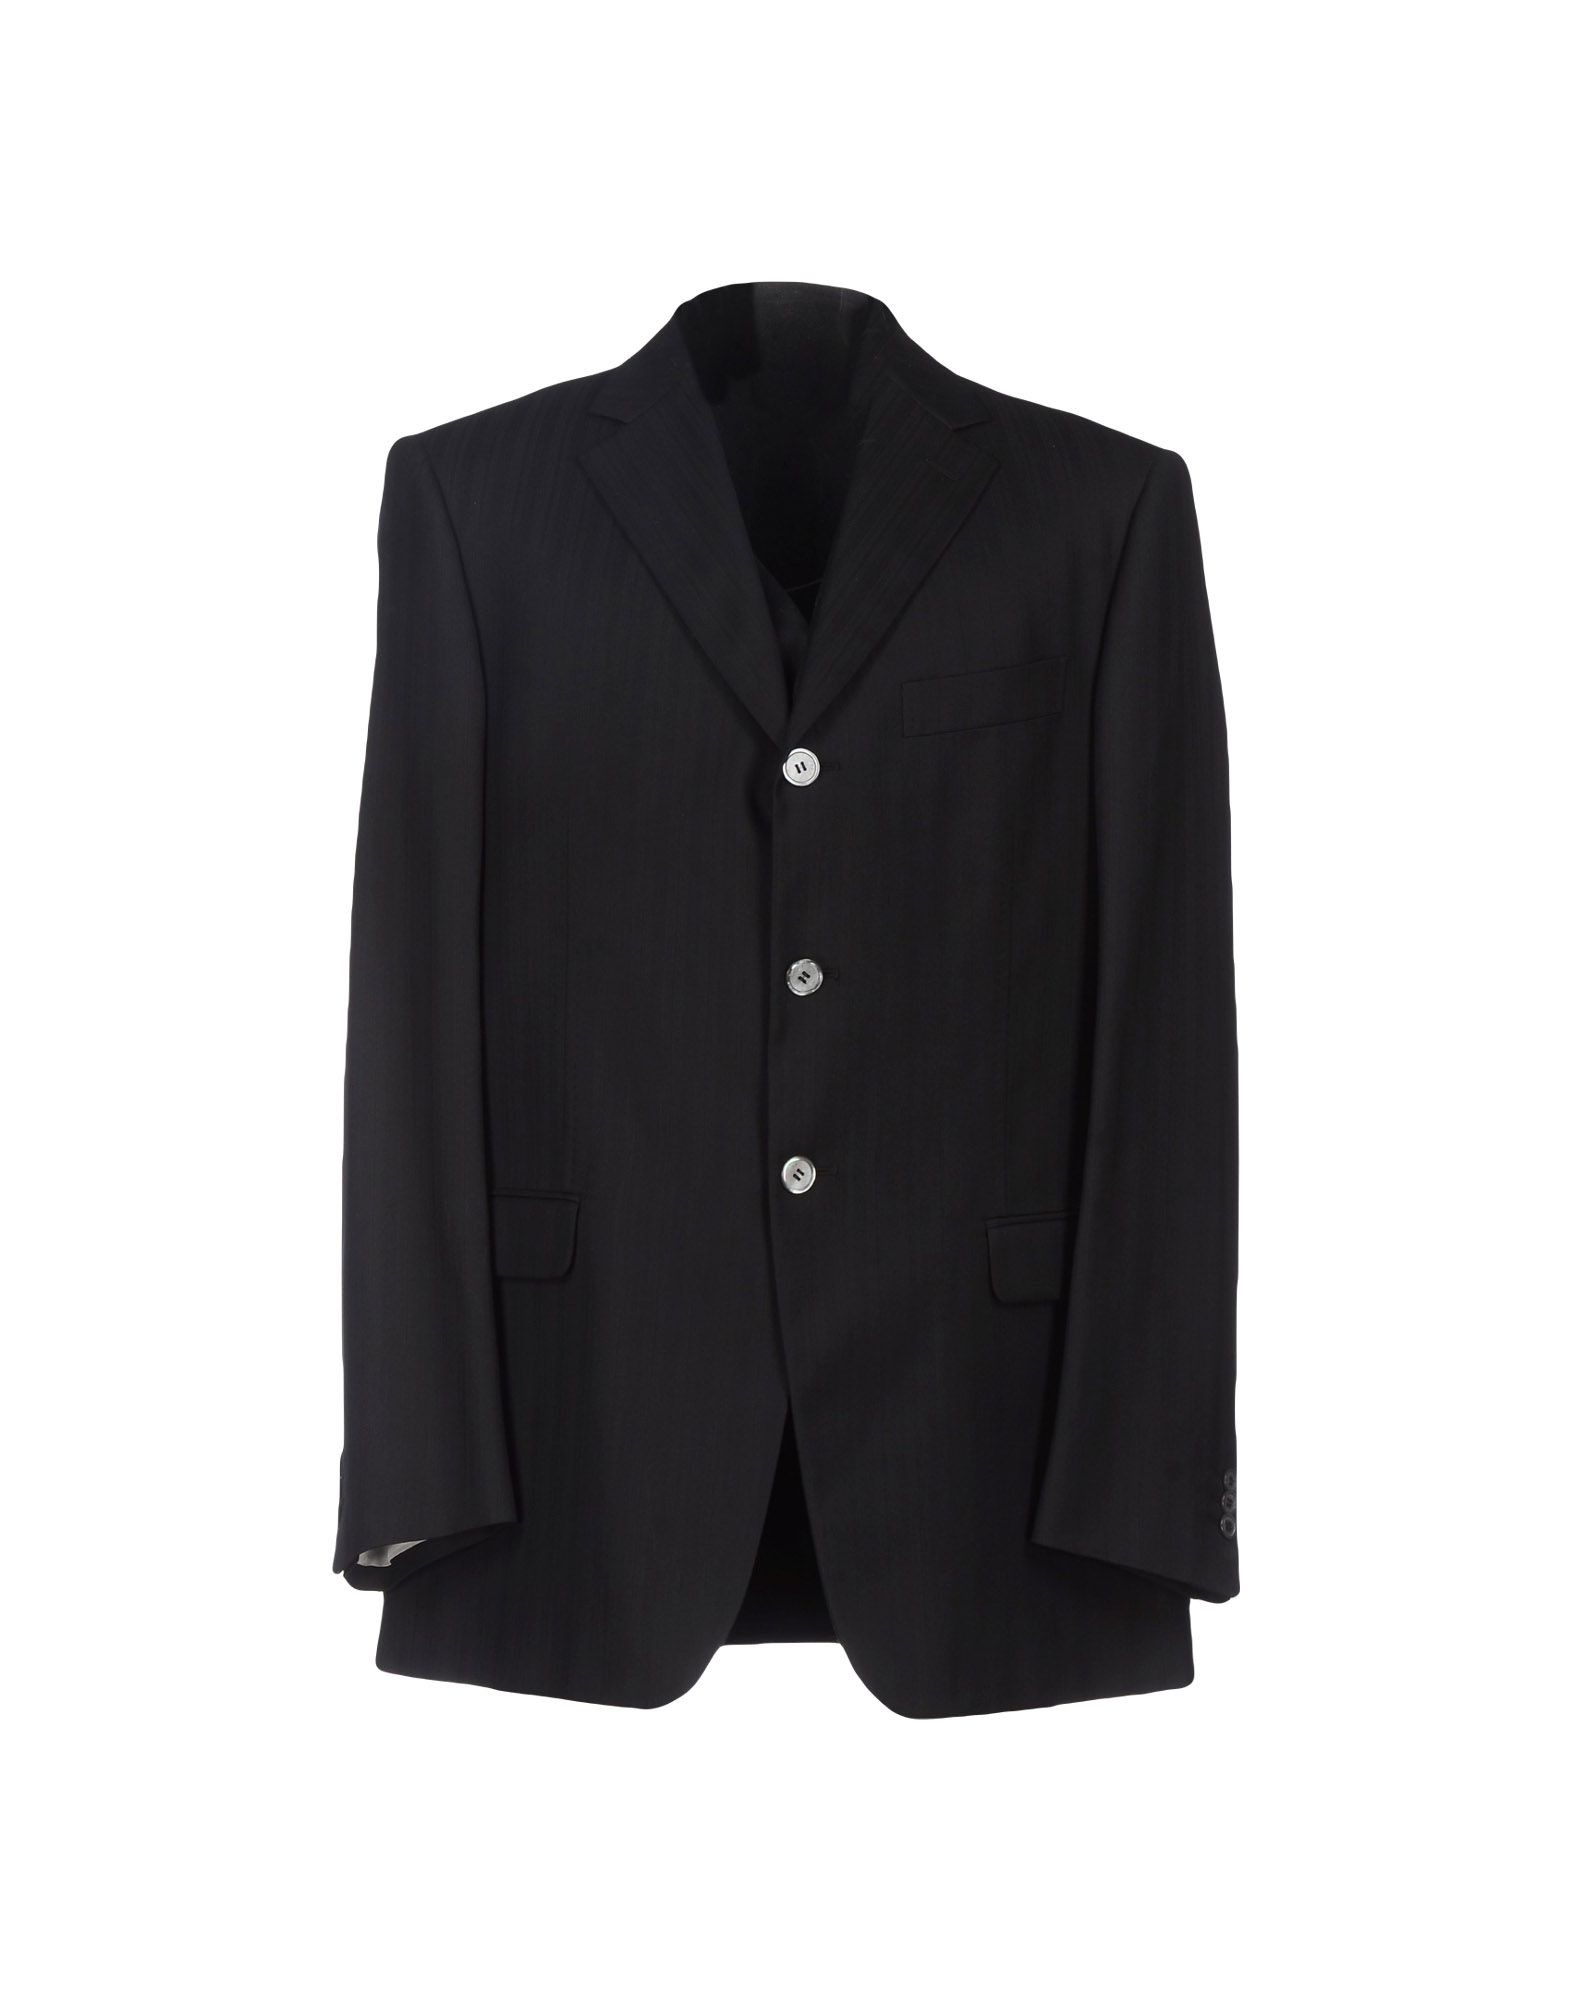 Pal Zileri Cerimonia Blazers Shop At Ebates